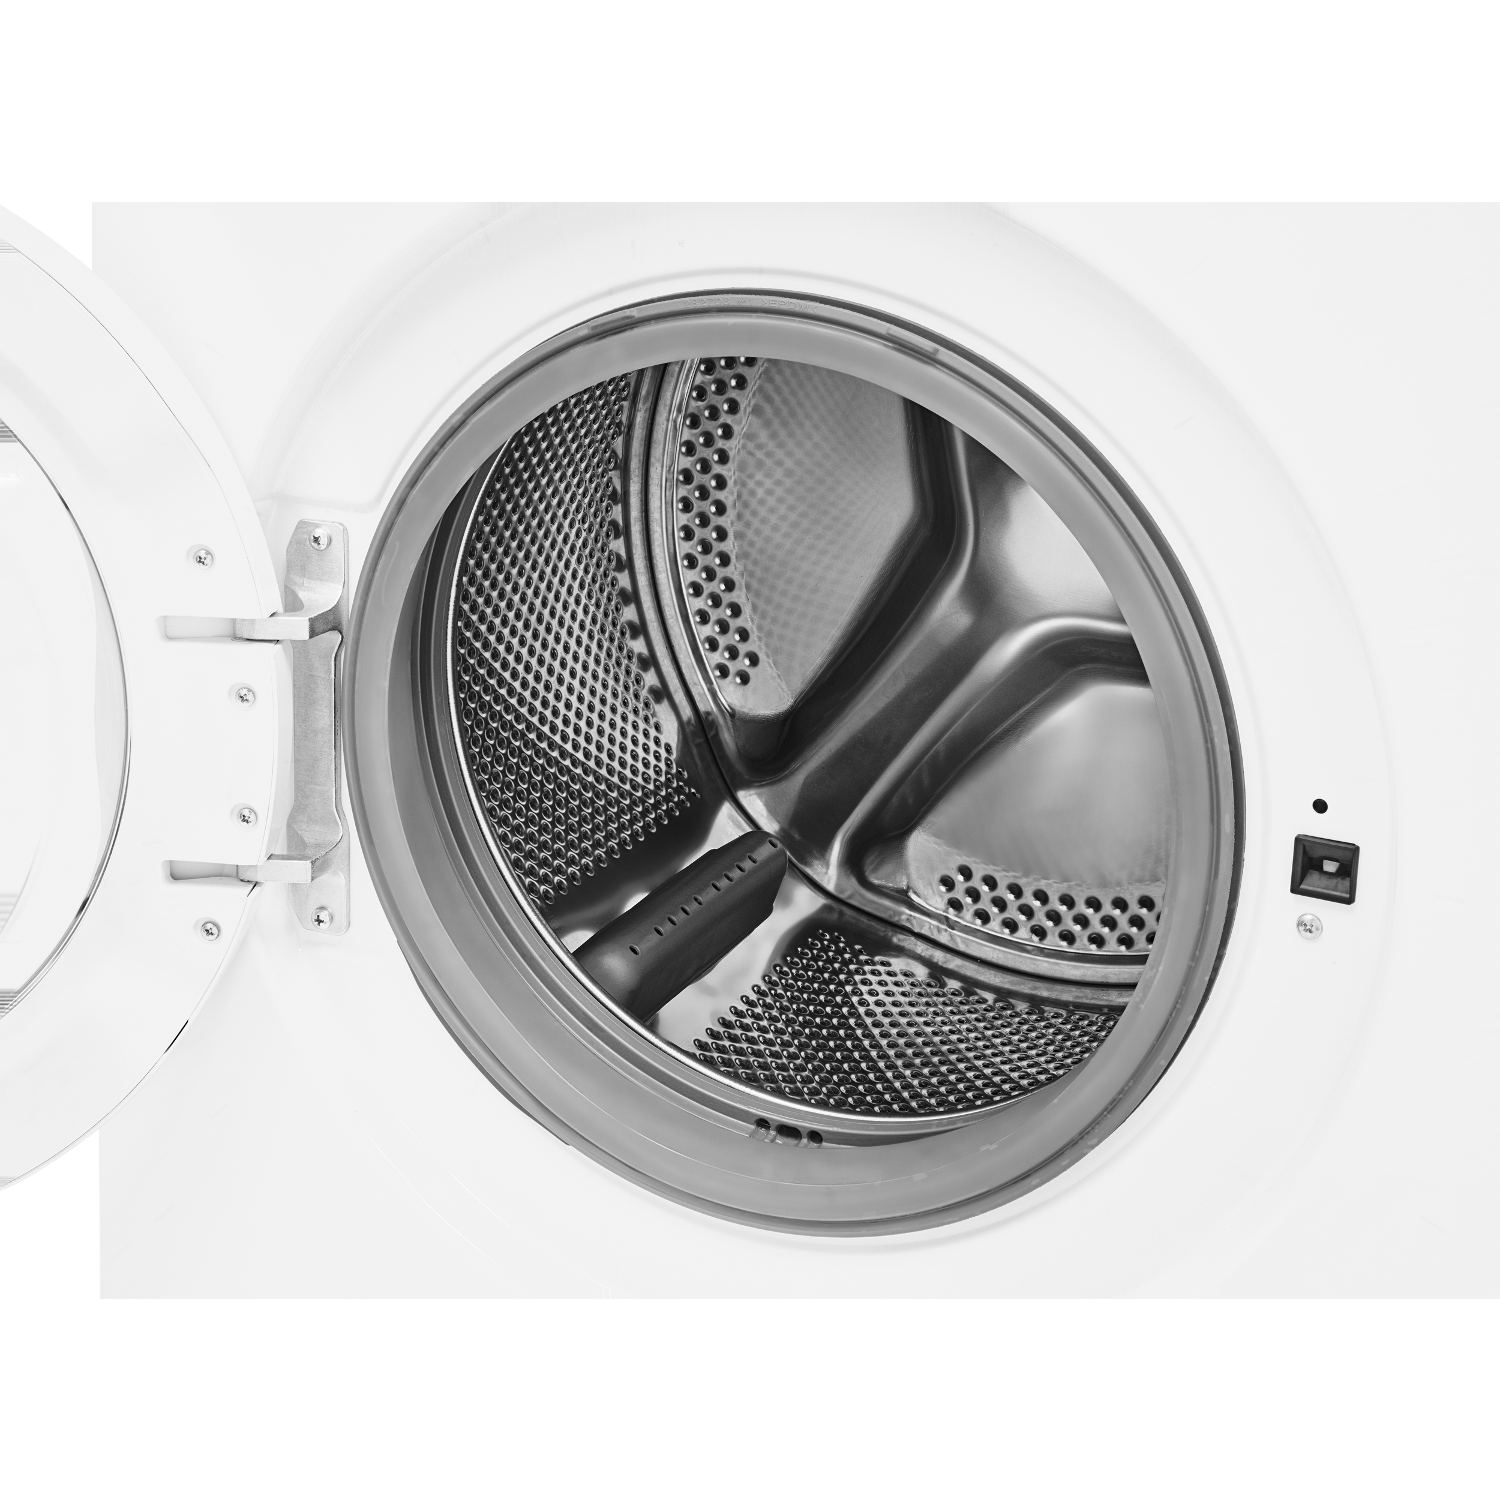 Beko 8kg 1200 Spin Washing Machine with Daily Quick Wash - White - 1